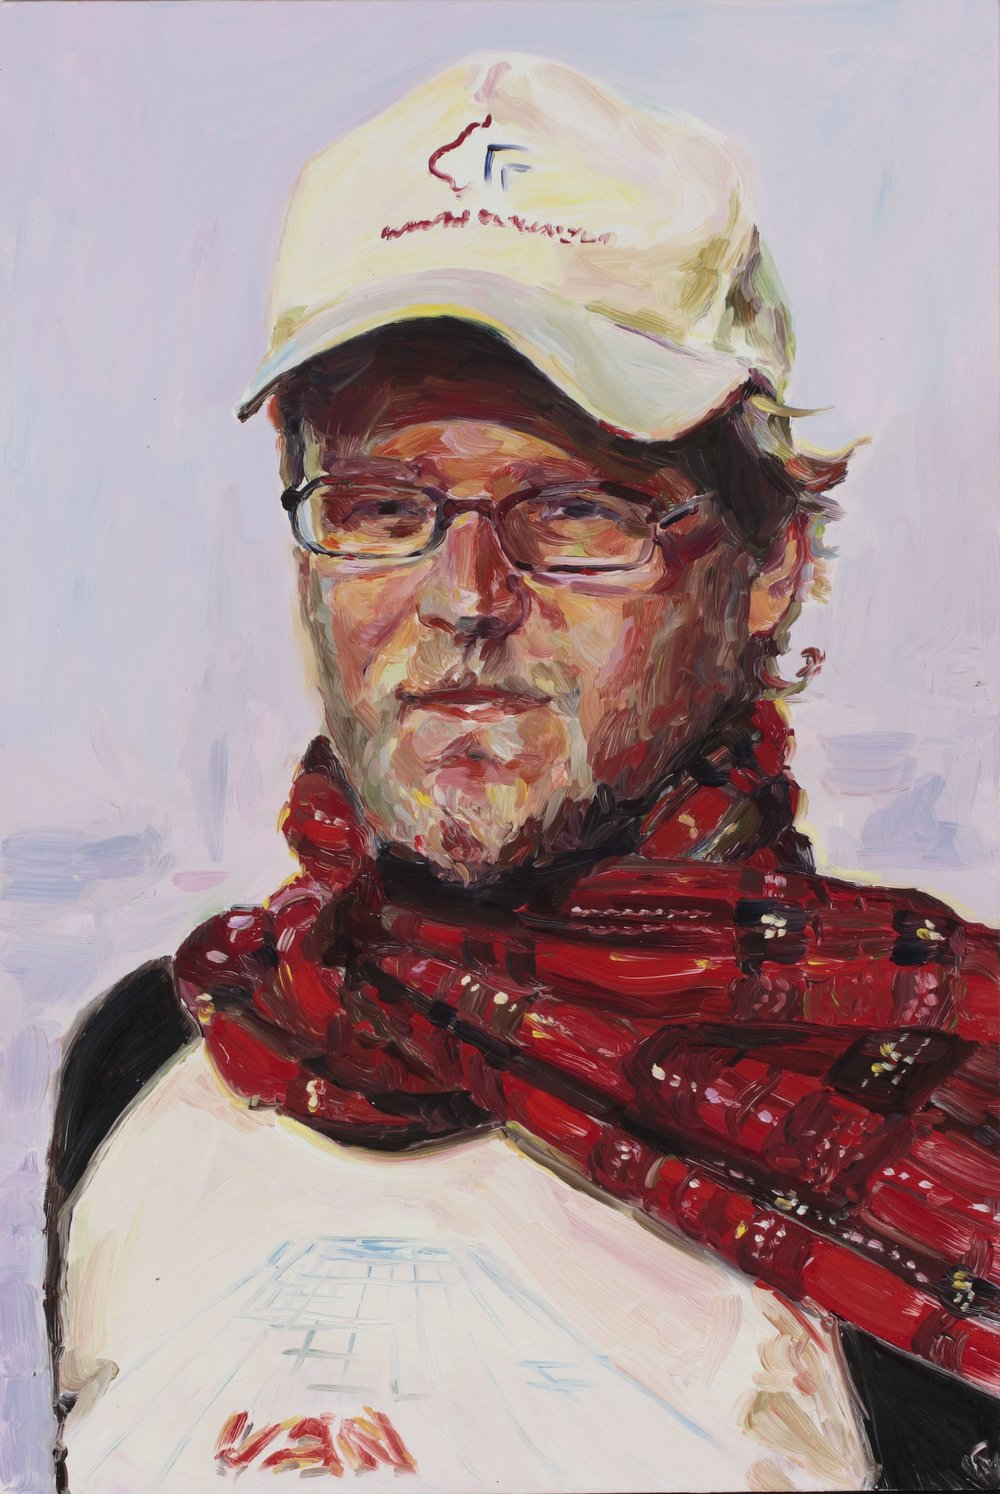 Wes Hill, oil on board, 60 x 40 cm, 2008.